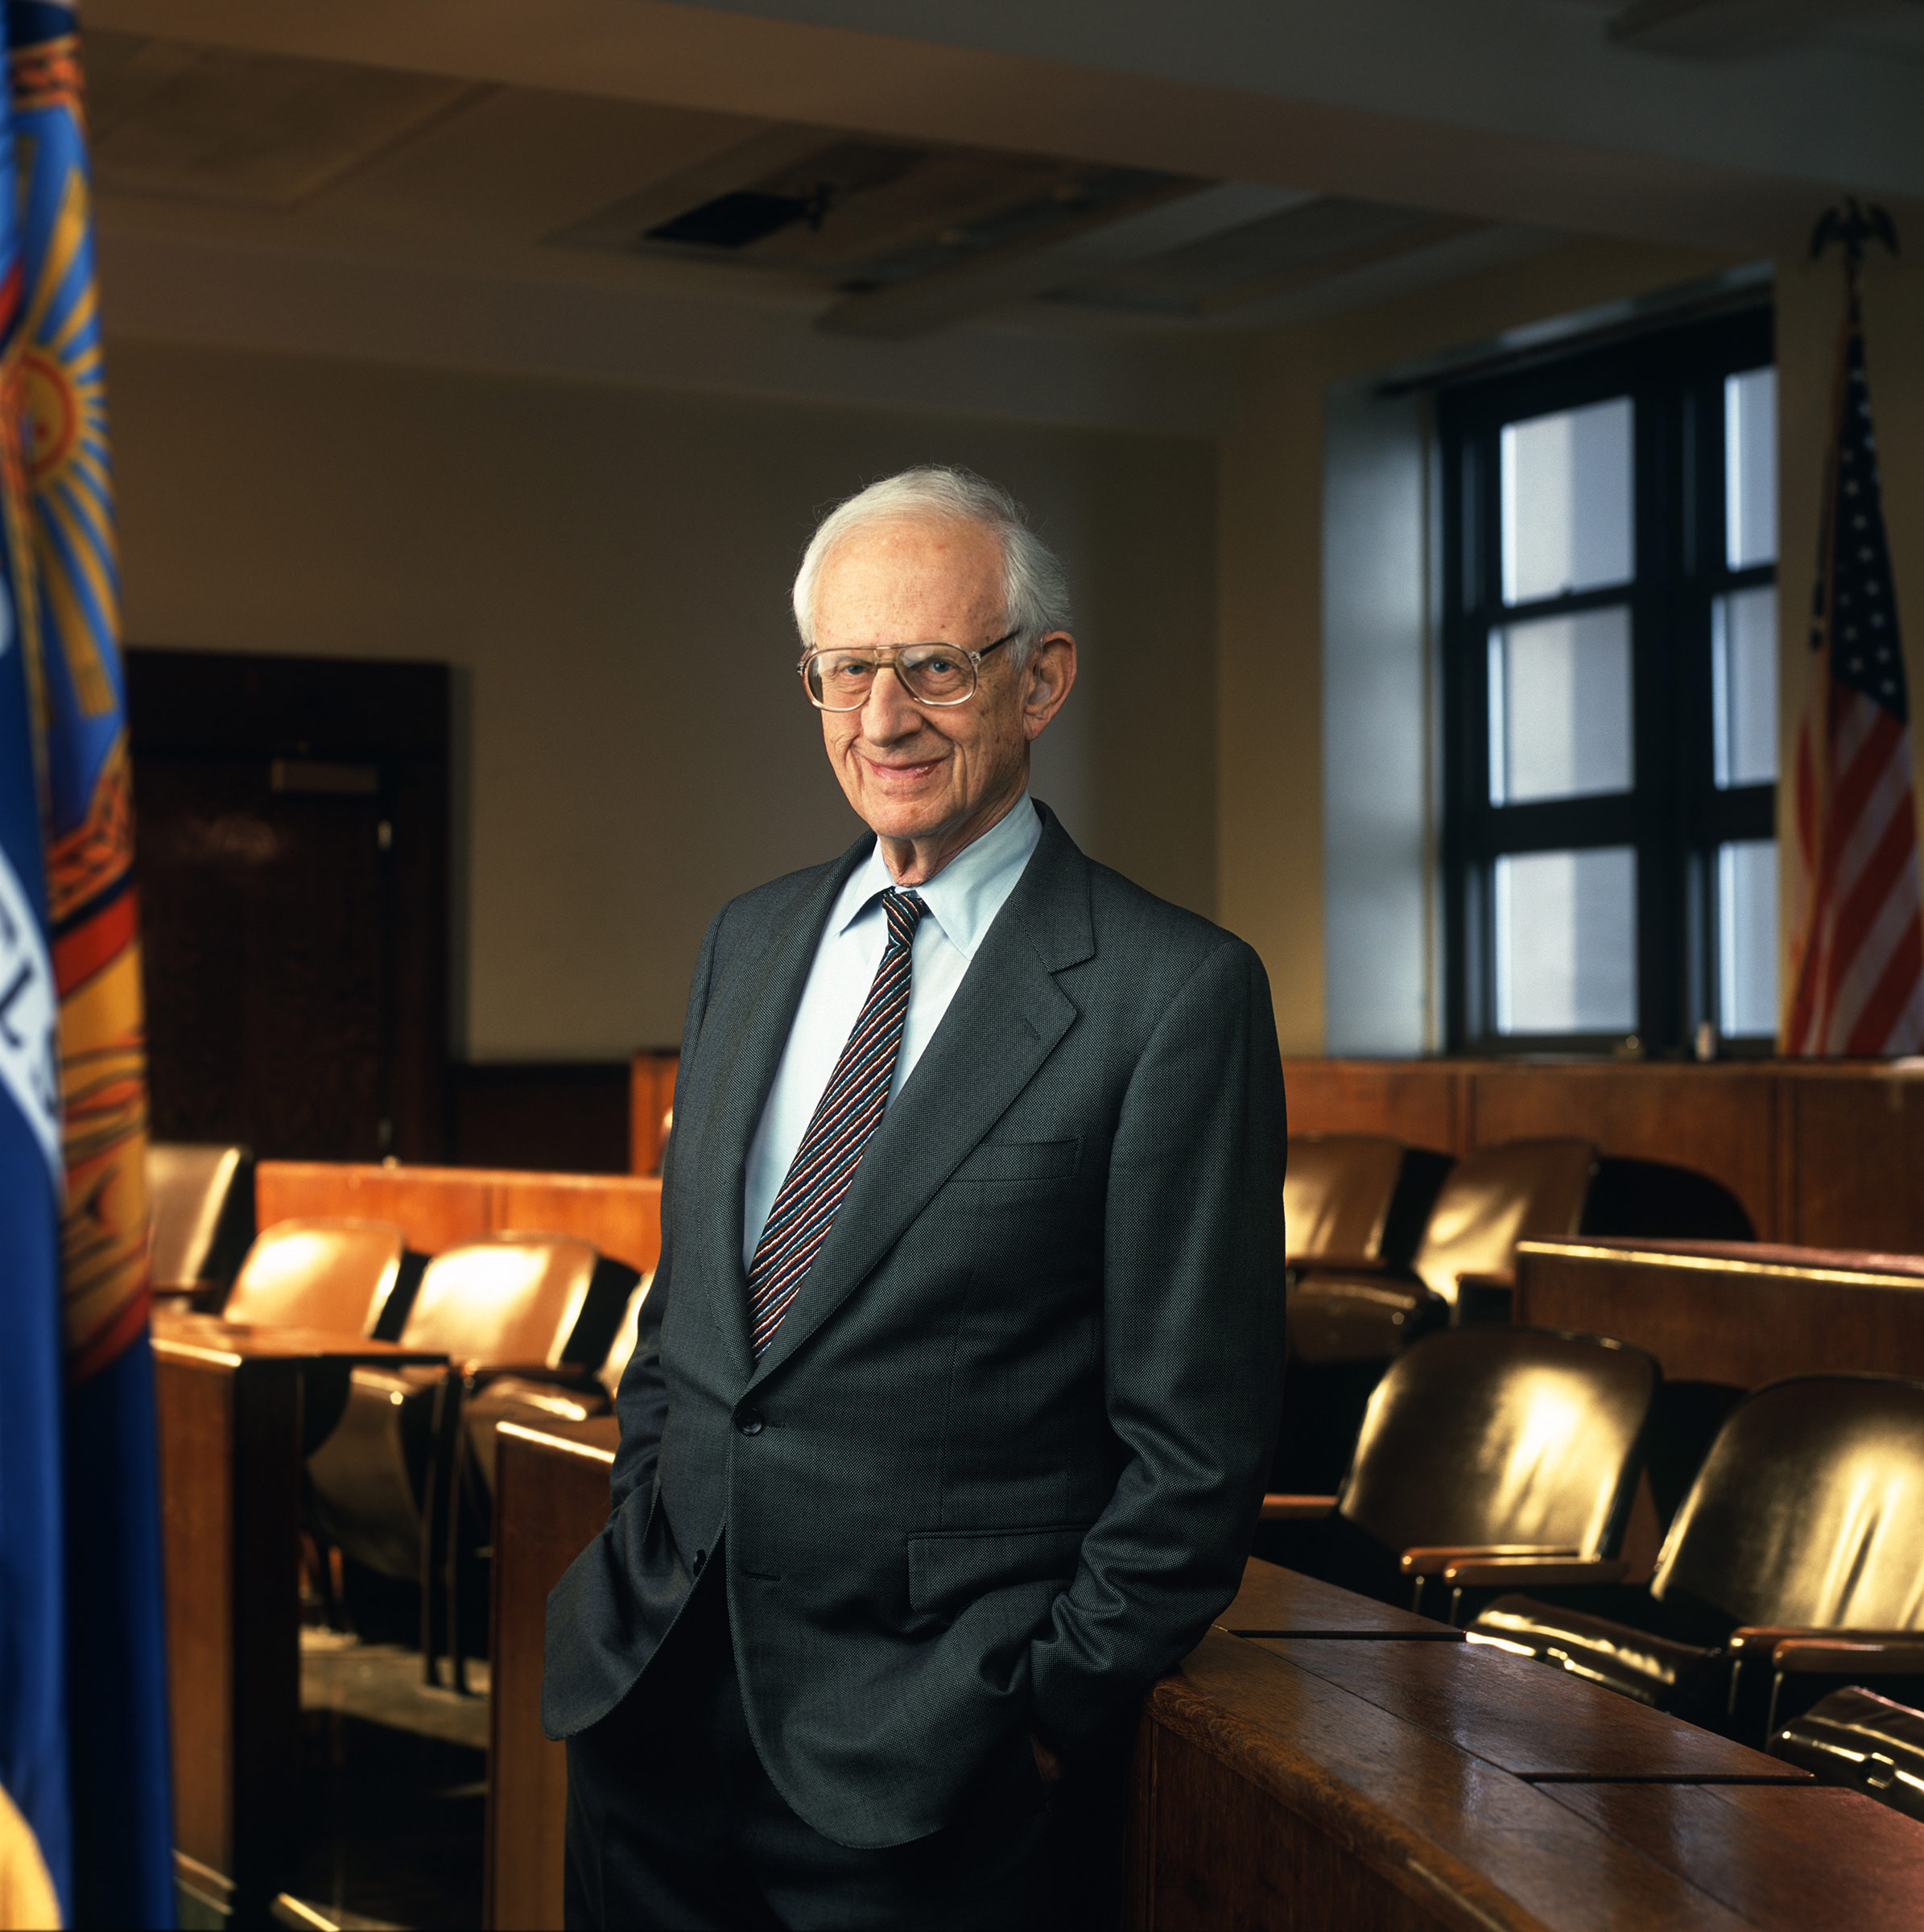 Morgenthau, the longest-serving Manhattan district attorney, poses for a portrait in a New York City courtroom on April 26, 2000.